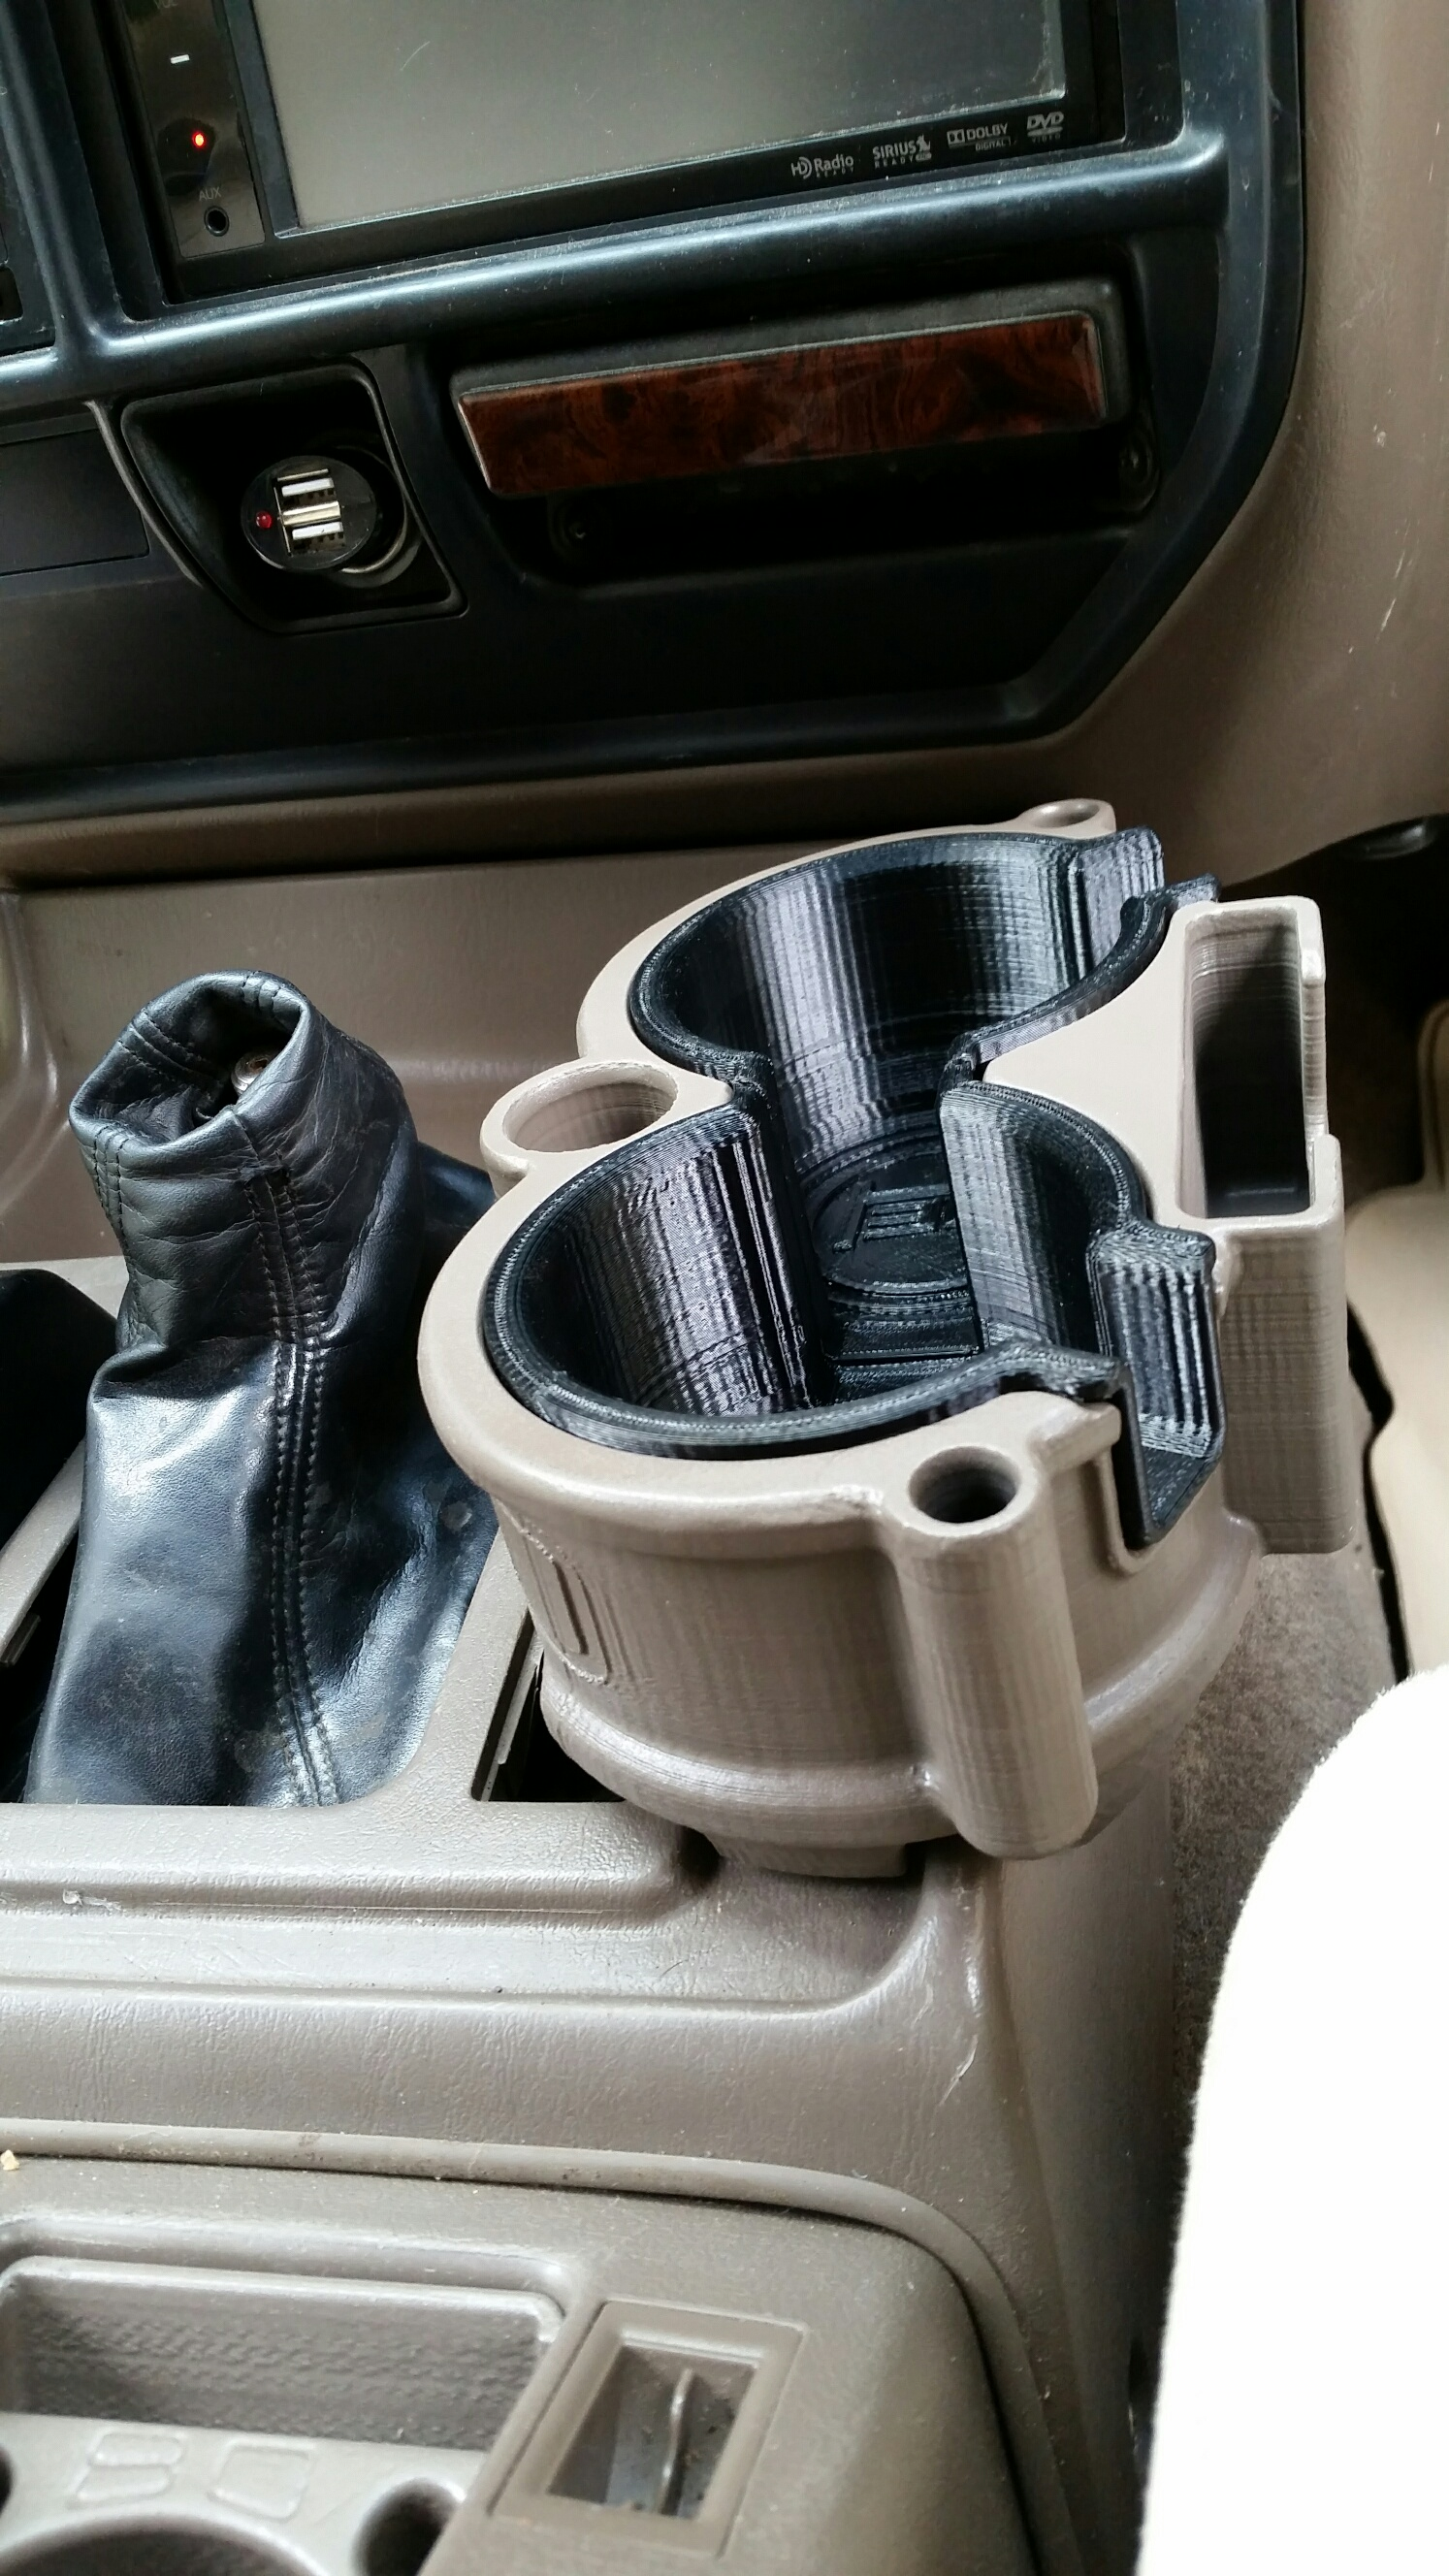 2014 Toyota Tacoma >> 80 Series/LX450 Double Cup Holder – BH3D Printing